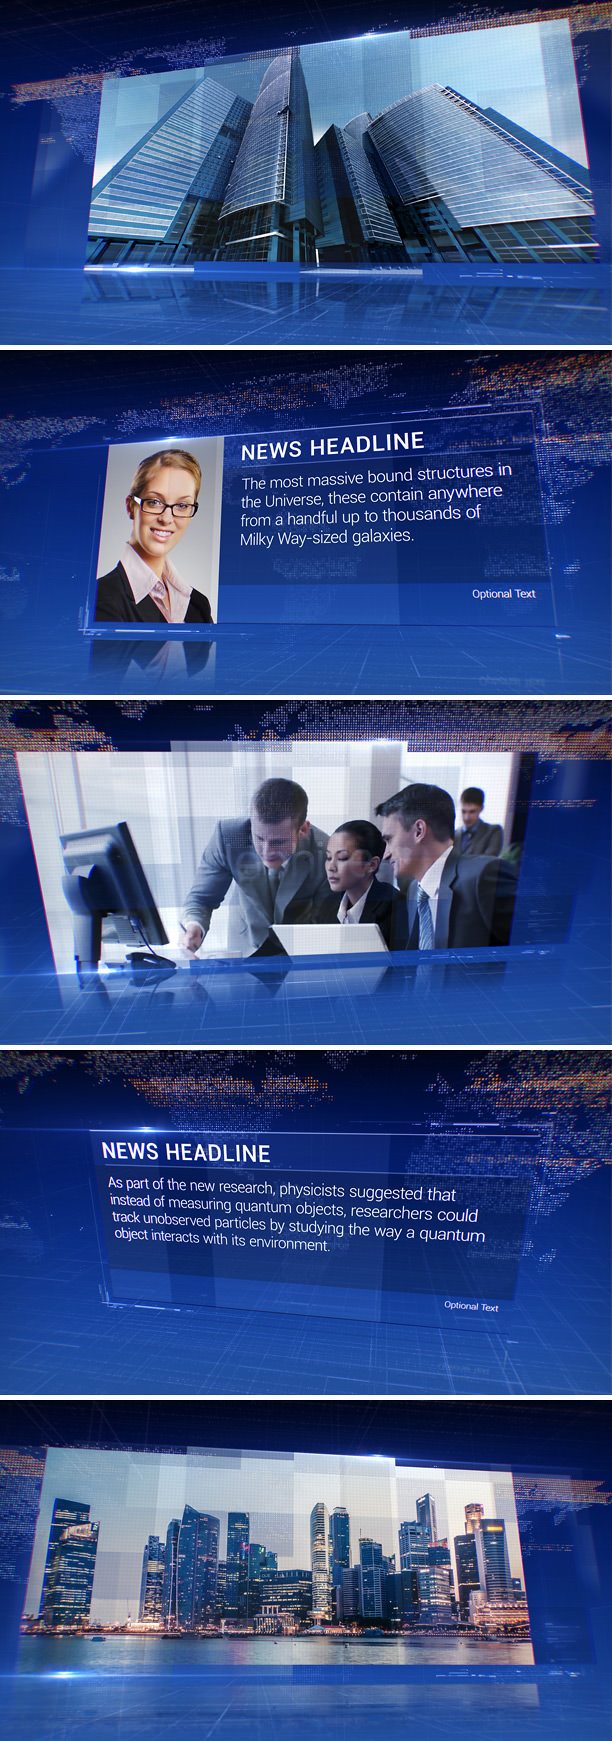 News After Effects Template for TV channel design, dynamic presentation, corporate event